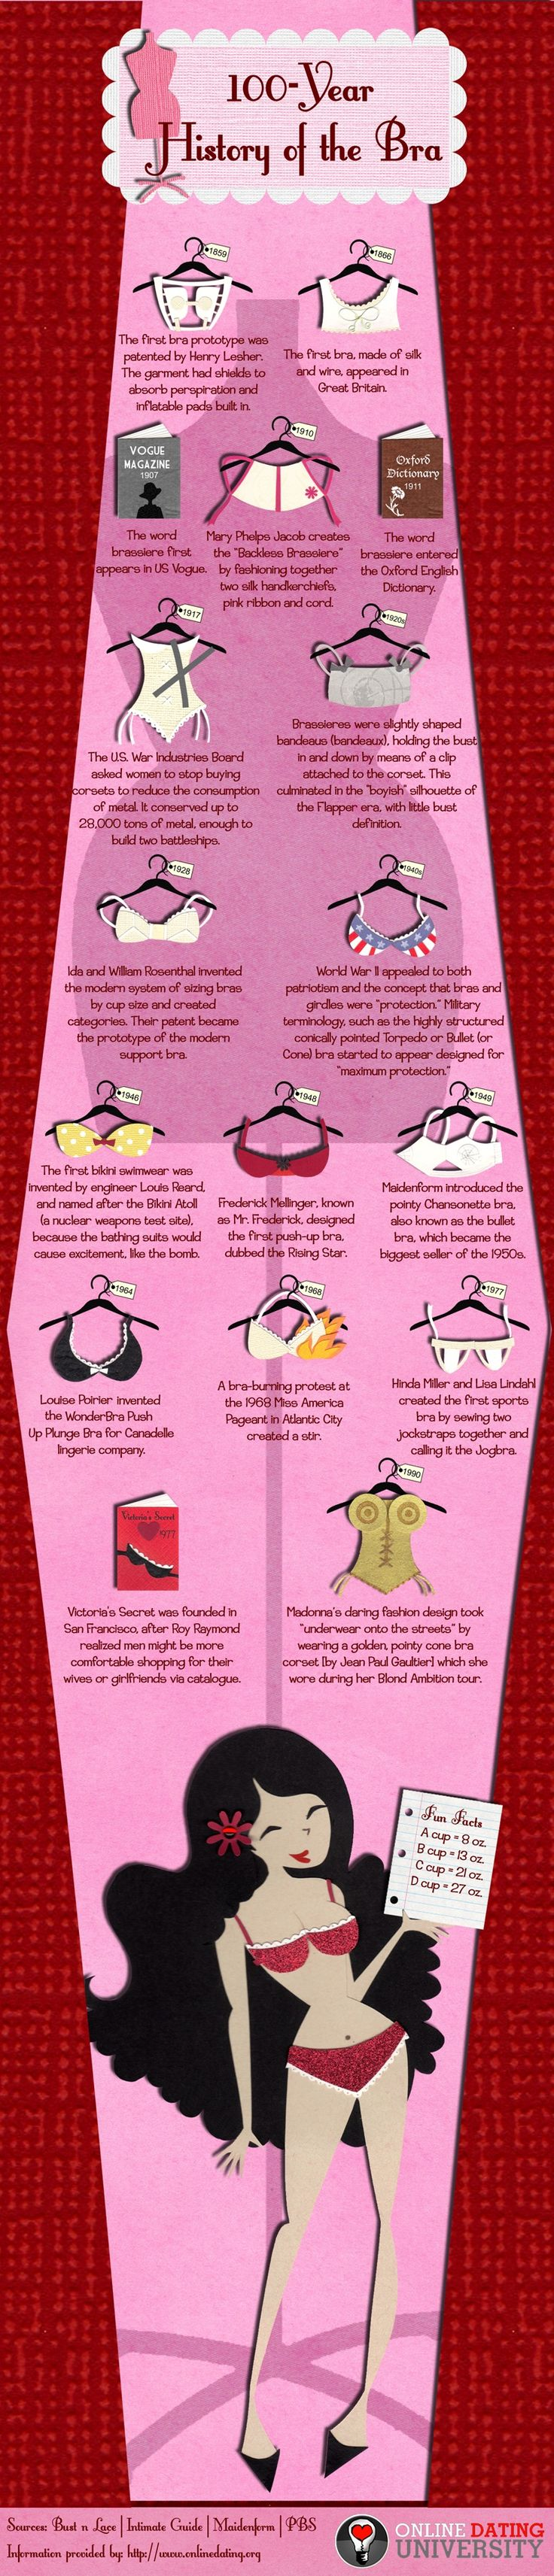 History of the Over-the-Shoulder-Boulder-Holder  I thought this was cute. It reminds me why I hate wearing a bra and if it is making me sag sooner? My only question is, why was it that a man invented the first bra?